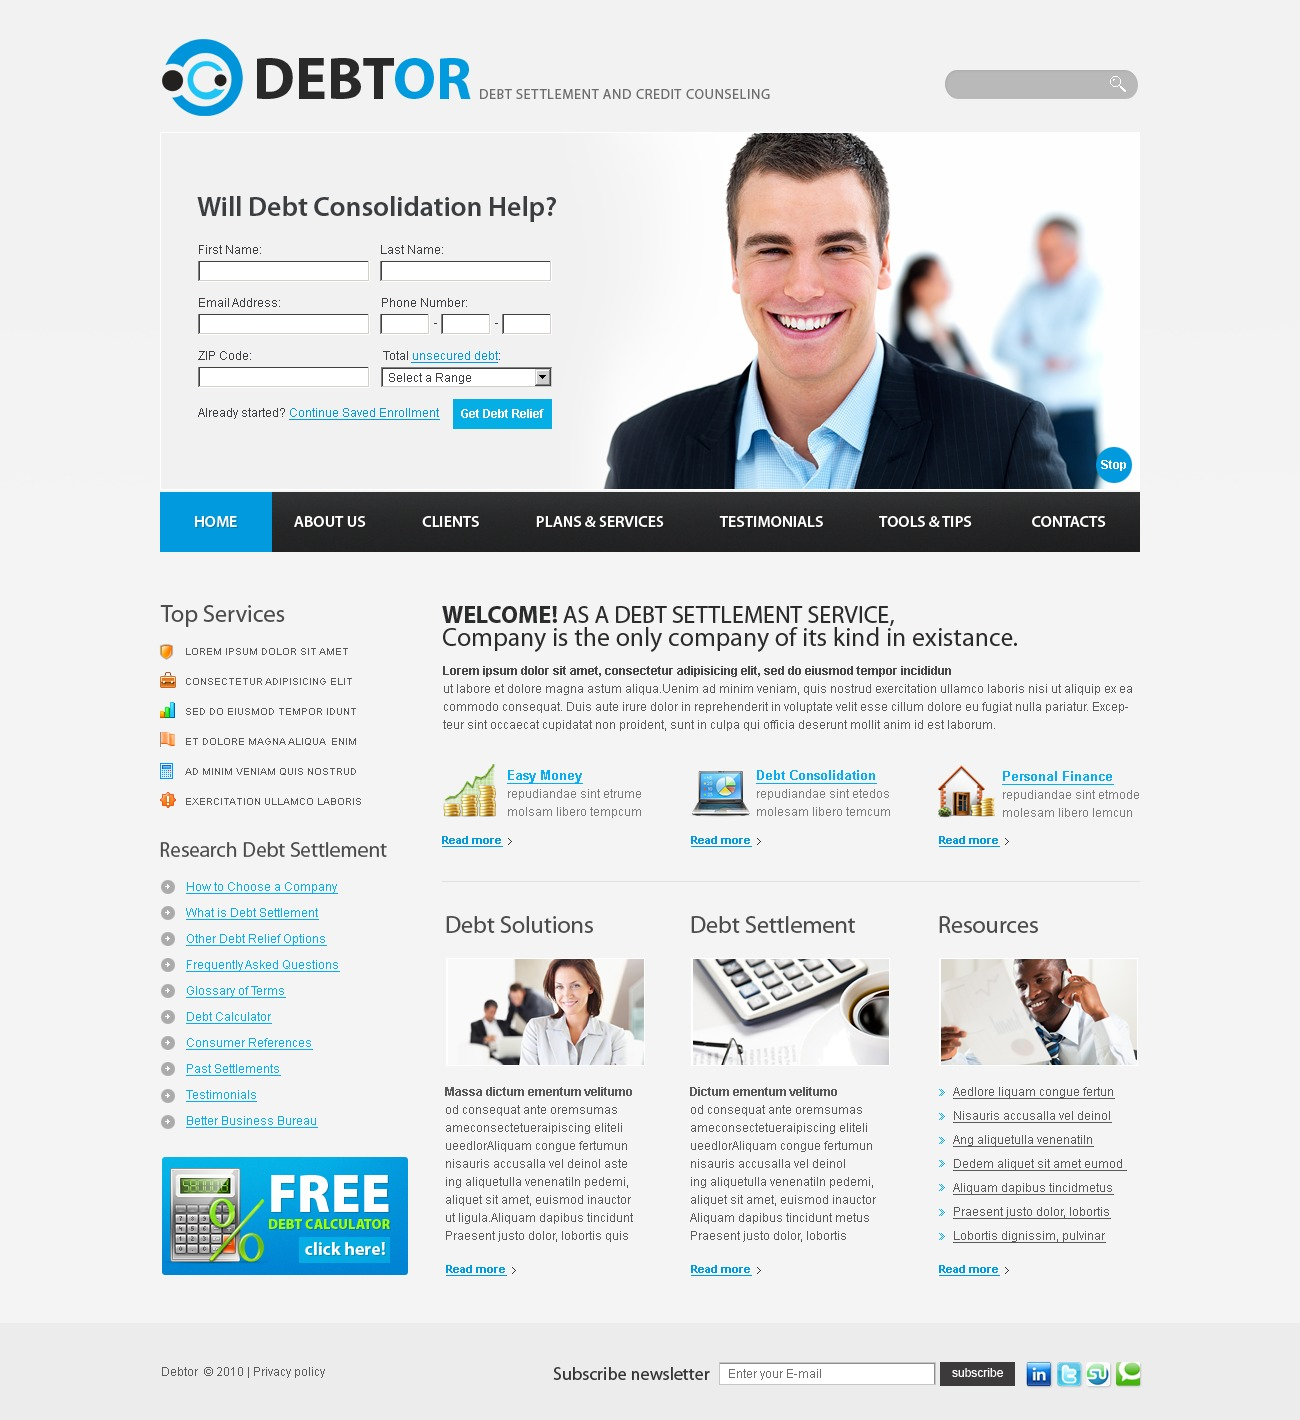 The Debtor Debt Settlement PSD Design 54246, one of the best PSD templates of its kind (business, flash 8, wide), also known as Debtor debt settlement PSD template, business company PSD template, corporate solutions PSD template, innovations PSD template, contacts PSD template, service PSD template, support PSD template, information dealer PSD template, stocks PSD template, team PSD template, success PSD template, money PSD template, marketing PSD template, director PSD template, manager PSD template, analytics PSD template, planning PSD template, limited PSD template, office PSD template, sales and related with Debtor debt settlement, business company, corporate solutions, innovations, contacts, service, support, information dealer, stocks, team, success, money, marketing, director, manager, analytics, planning, limited, office, sales, etc.